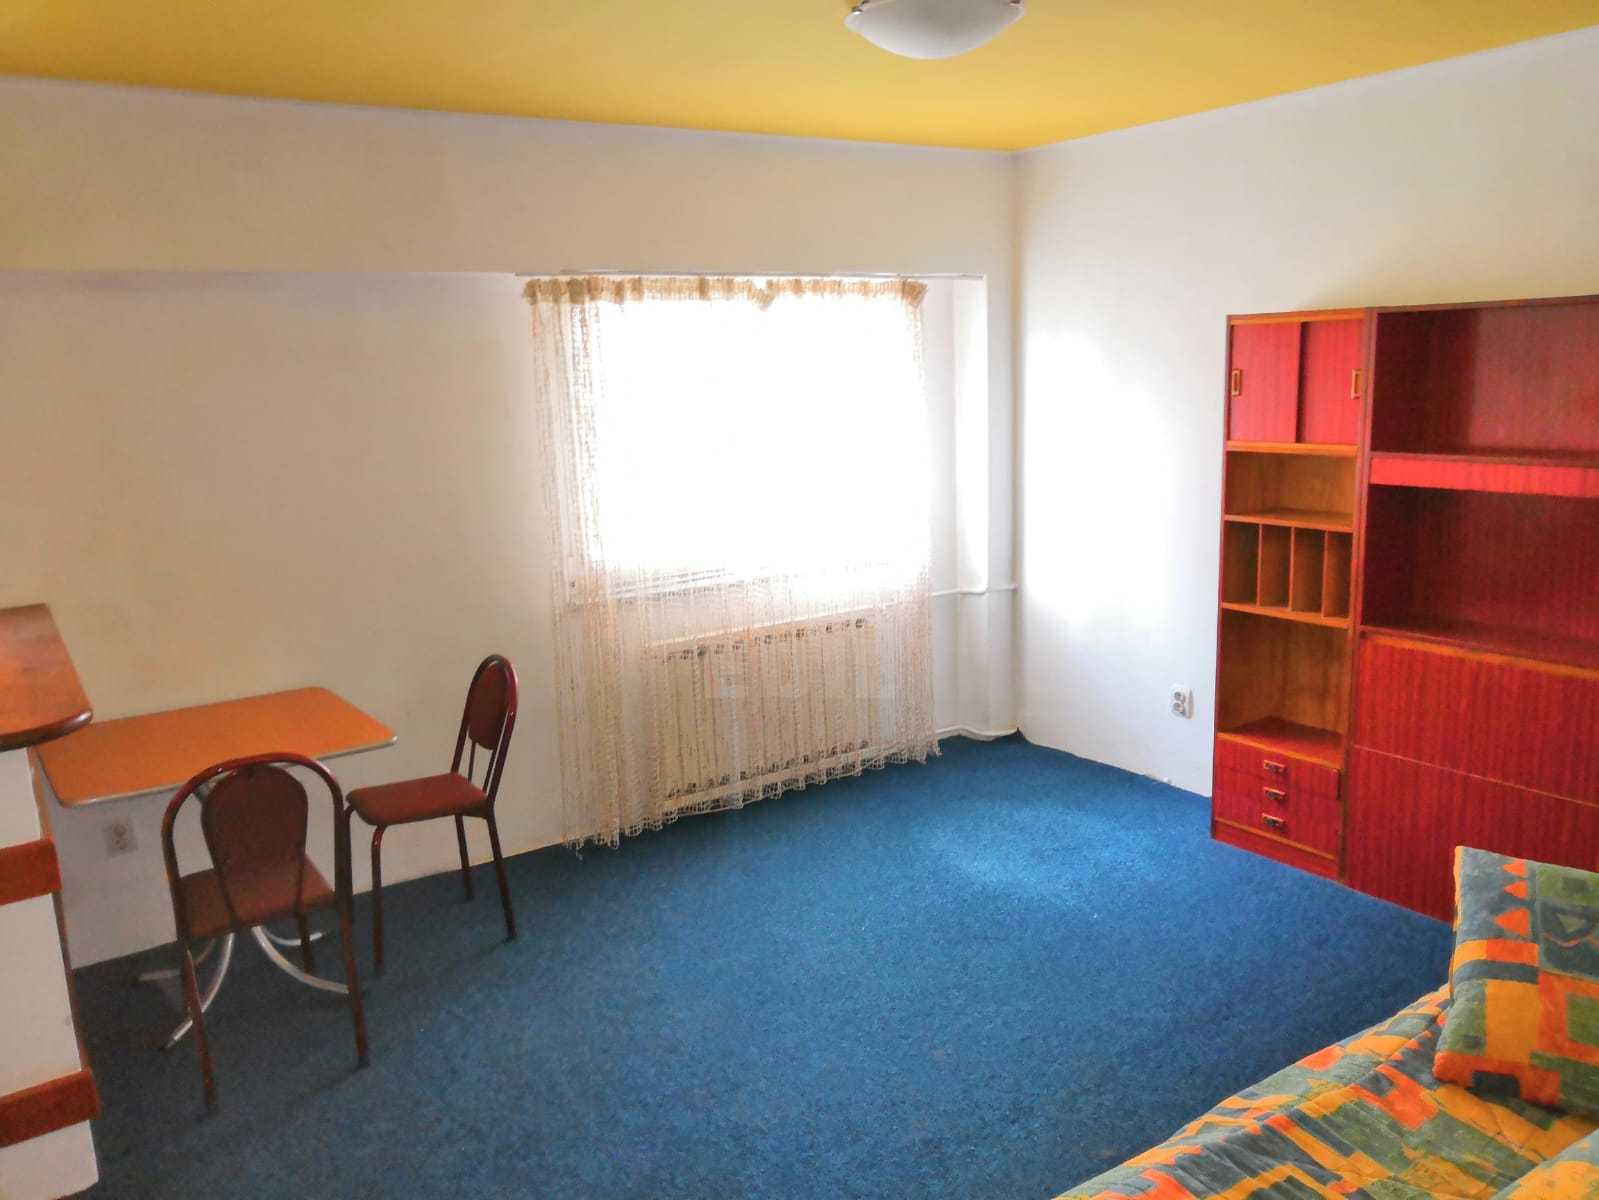 Apartment for sale a room, APCJ298924-6